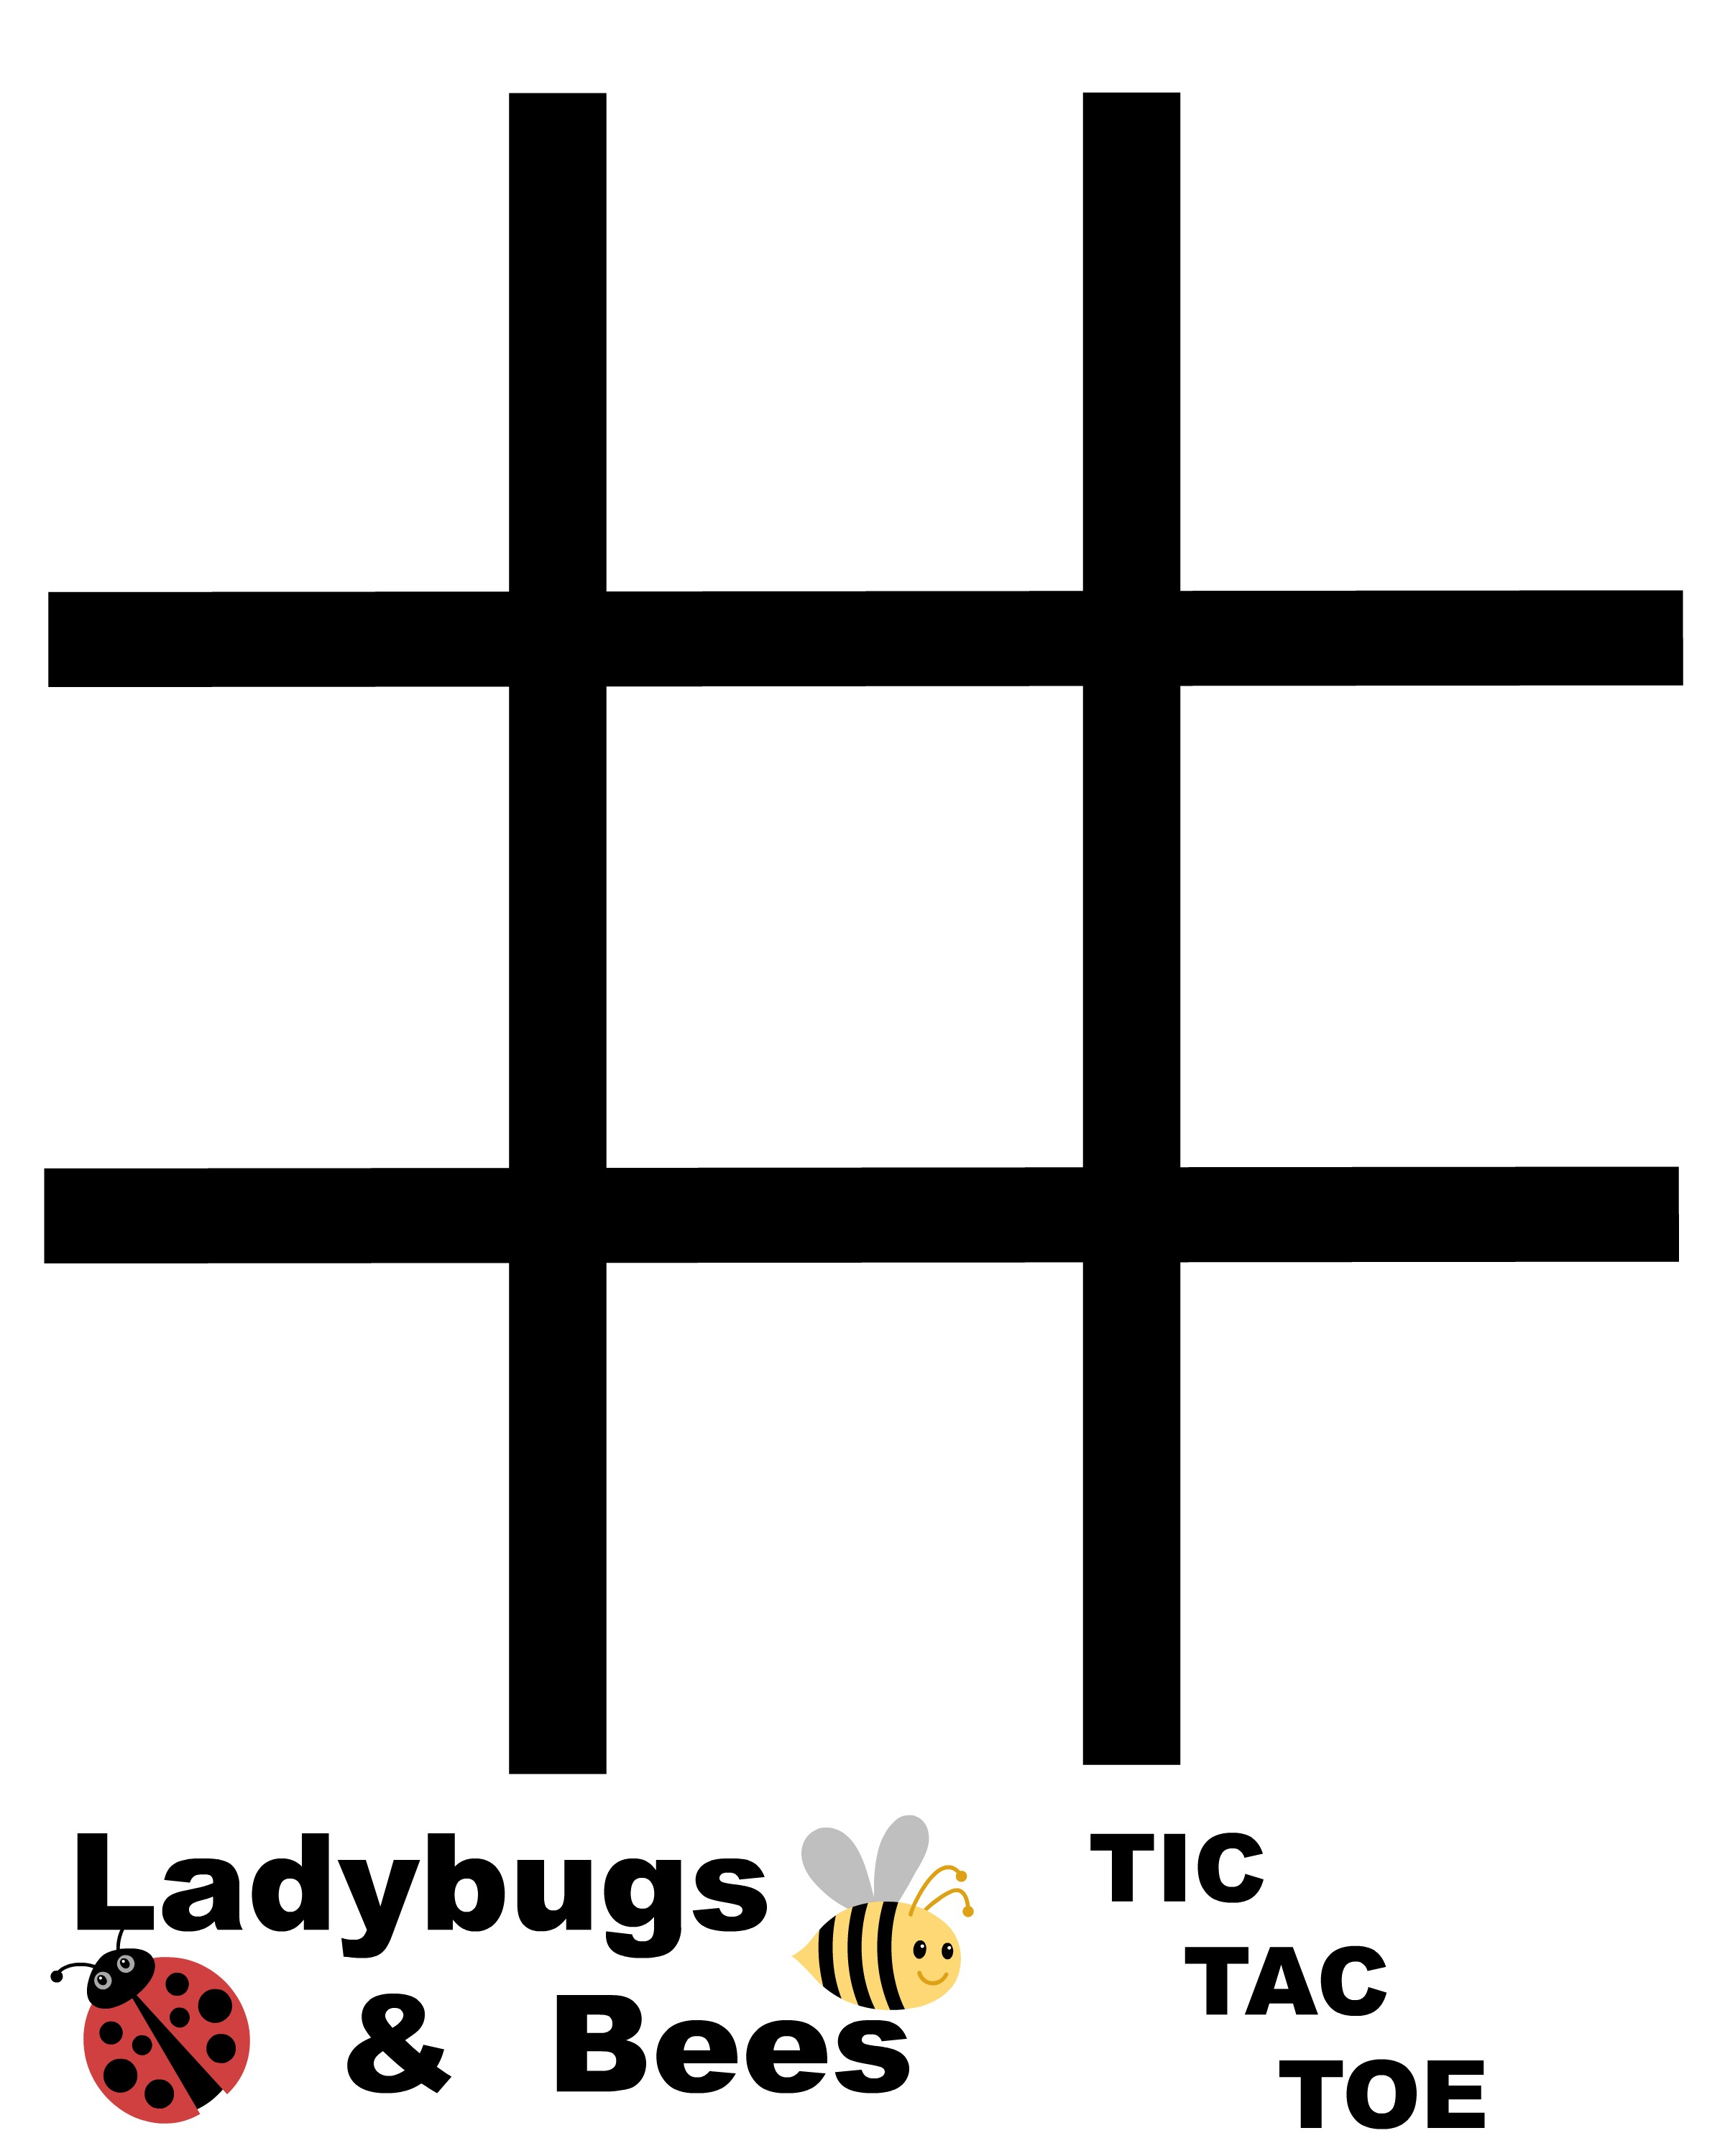 picture relating to Free Printable Tic Tac Toe Board identify Ladybug and Bees Tic Tac Toe Recreation Free of charge Printables